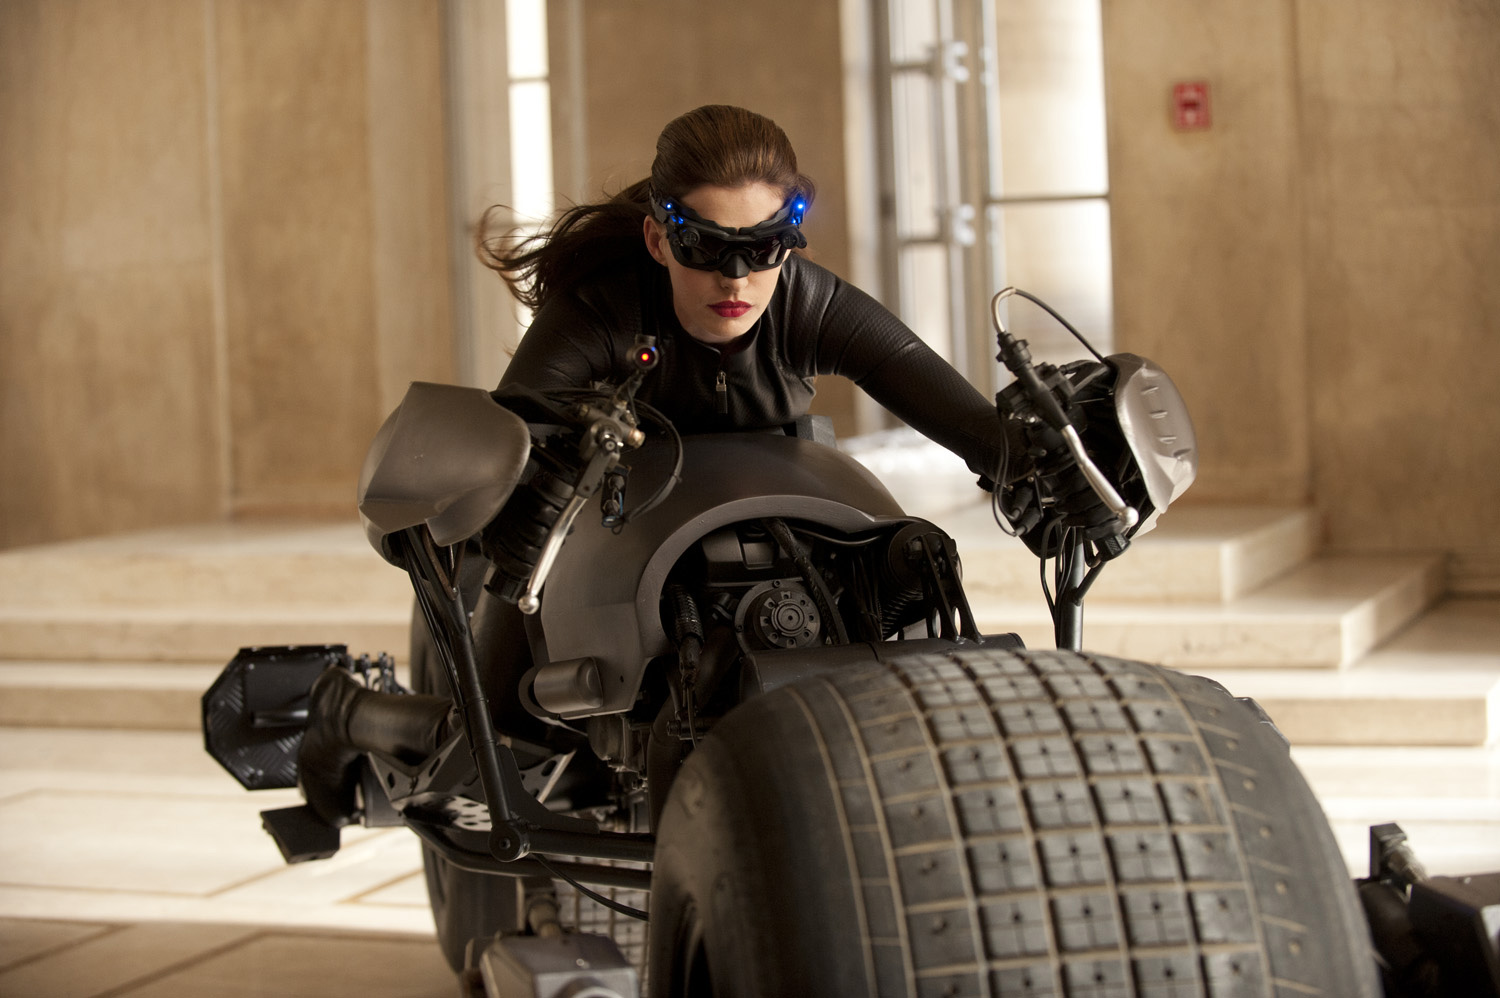 THE DARK KNIGHT RISES - Catwoman Costume Revealed